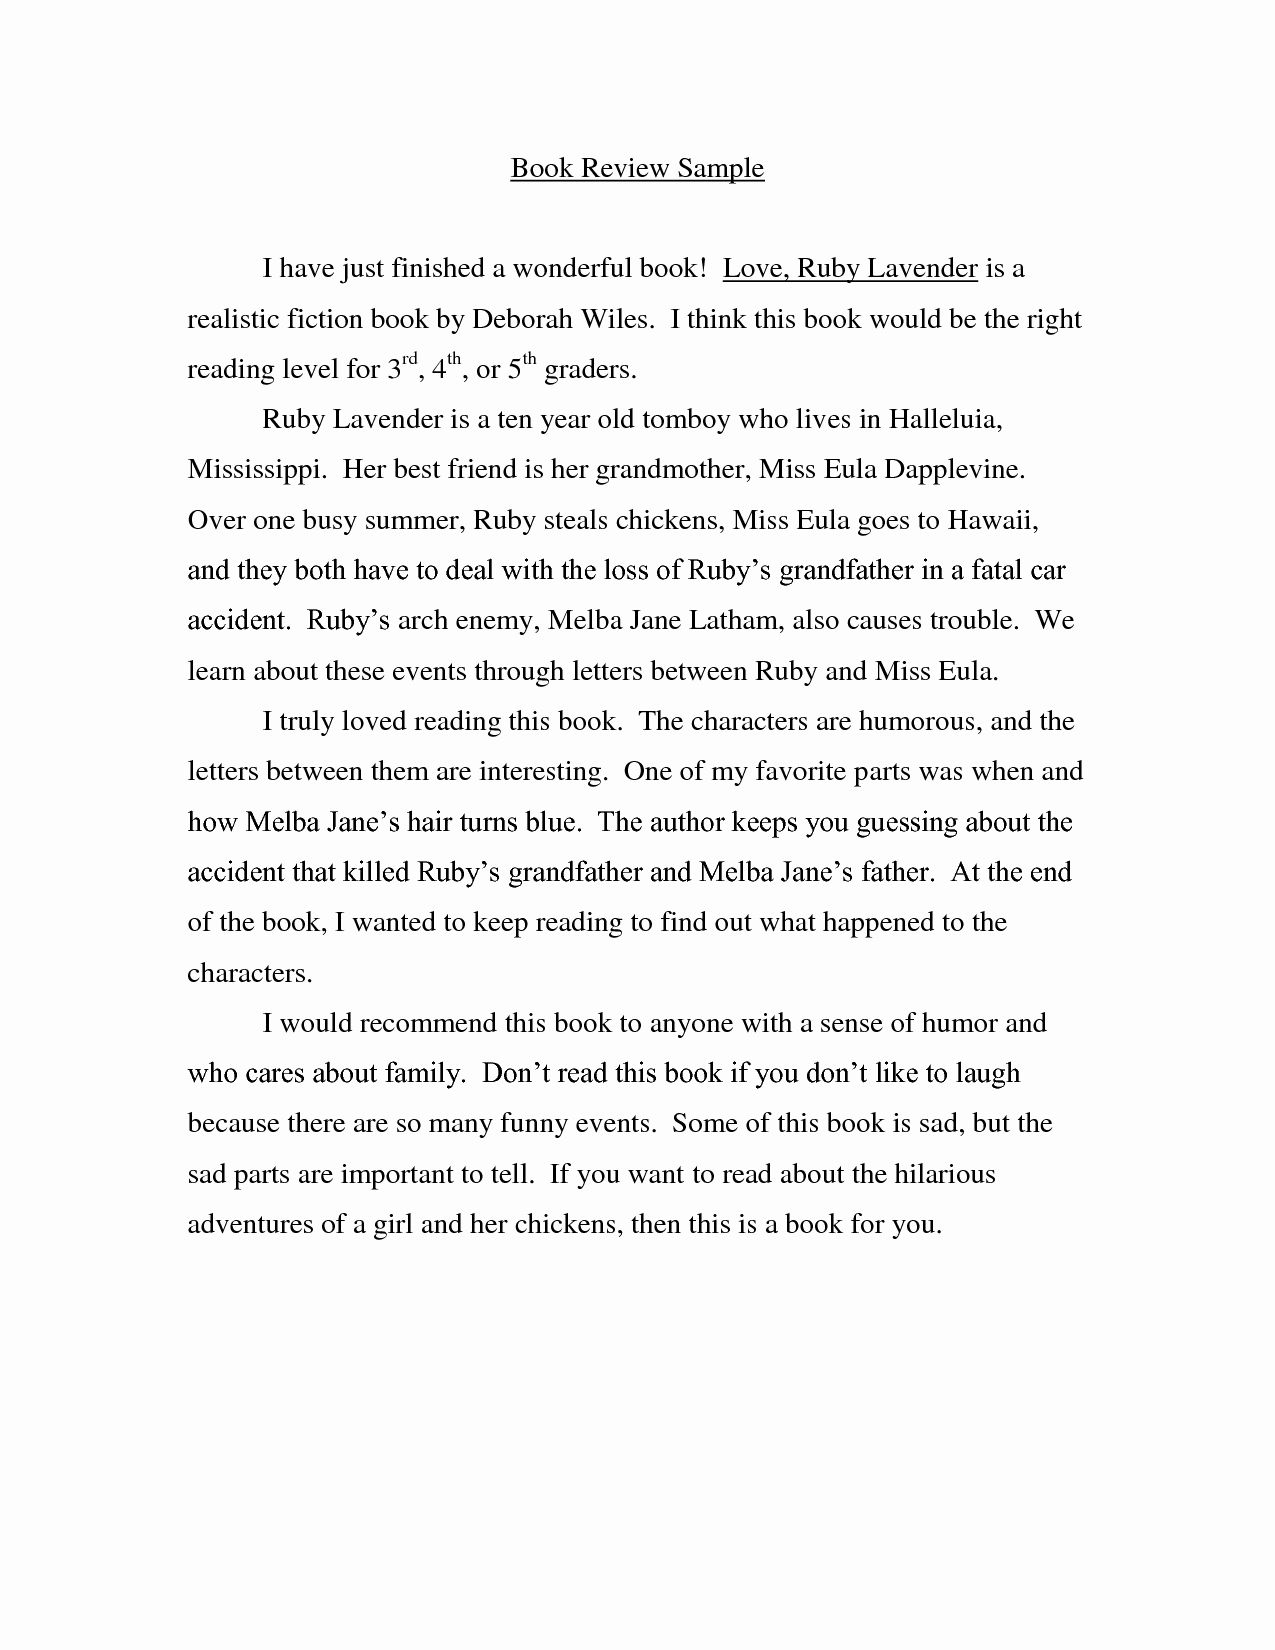 Book Analysi Format Sample Unique Writing A Critique Essay Millicent Roger Review Example Report Templates Of